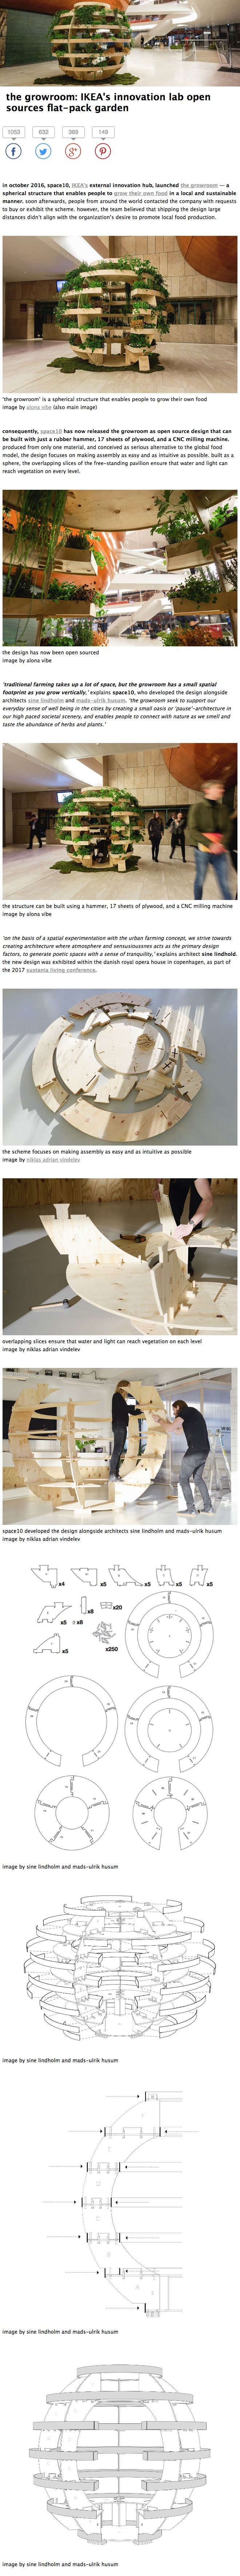 the growroom: IKEA's innovation lab open sources flat-pack garden // The growroom has a small spatial footprint as you grow vertically. space10 has now released the growroom as open source design that can be built with just a rubber hammer, 17 sheets of plywood, and a CNC milling machine.